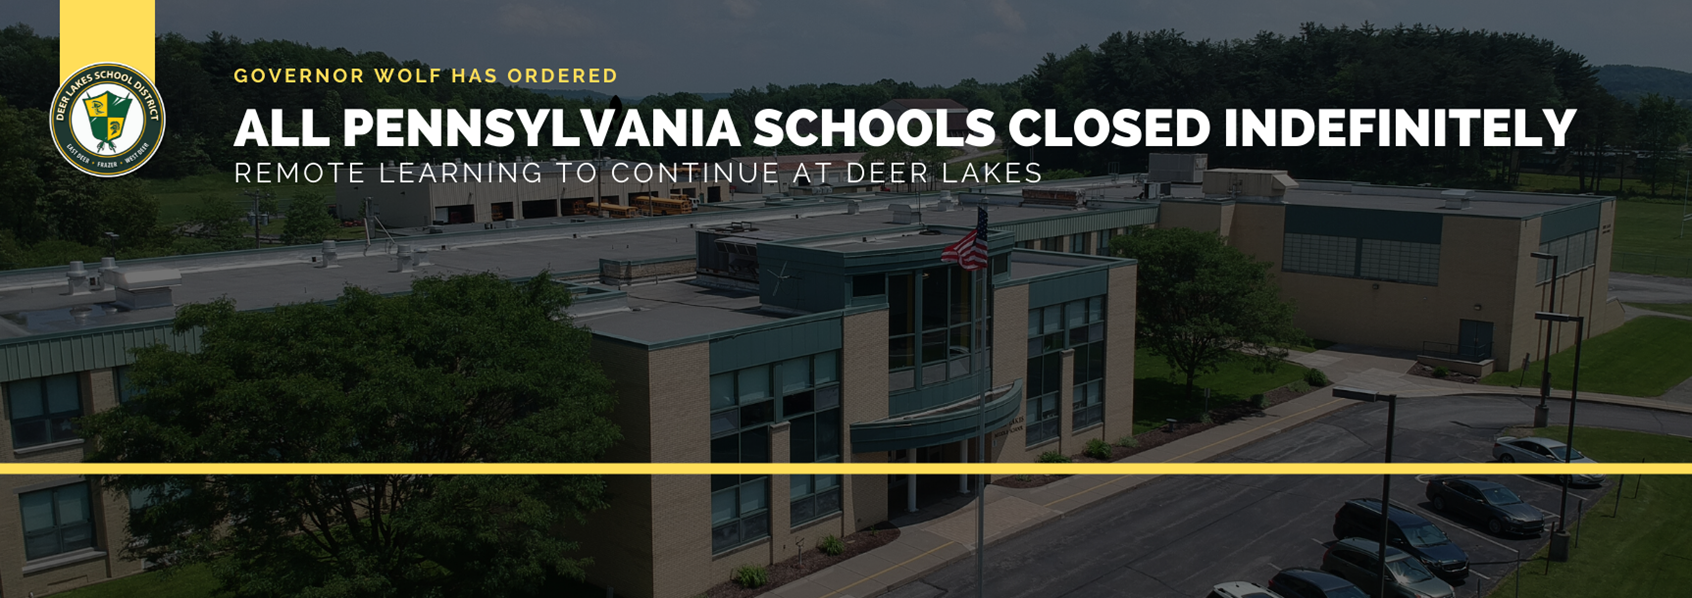 PA Extends COVID-19 Related School, Business Closures Indefinitely